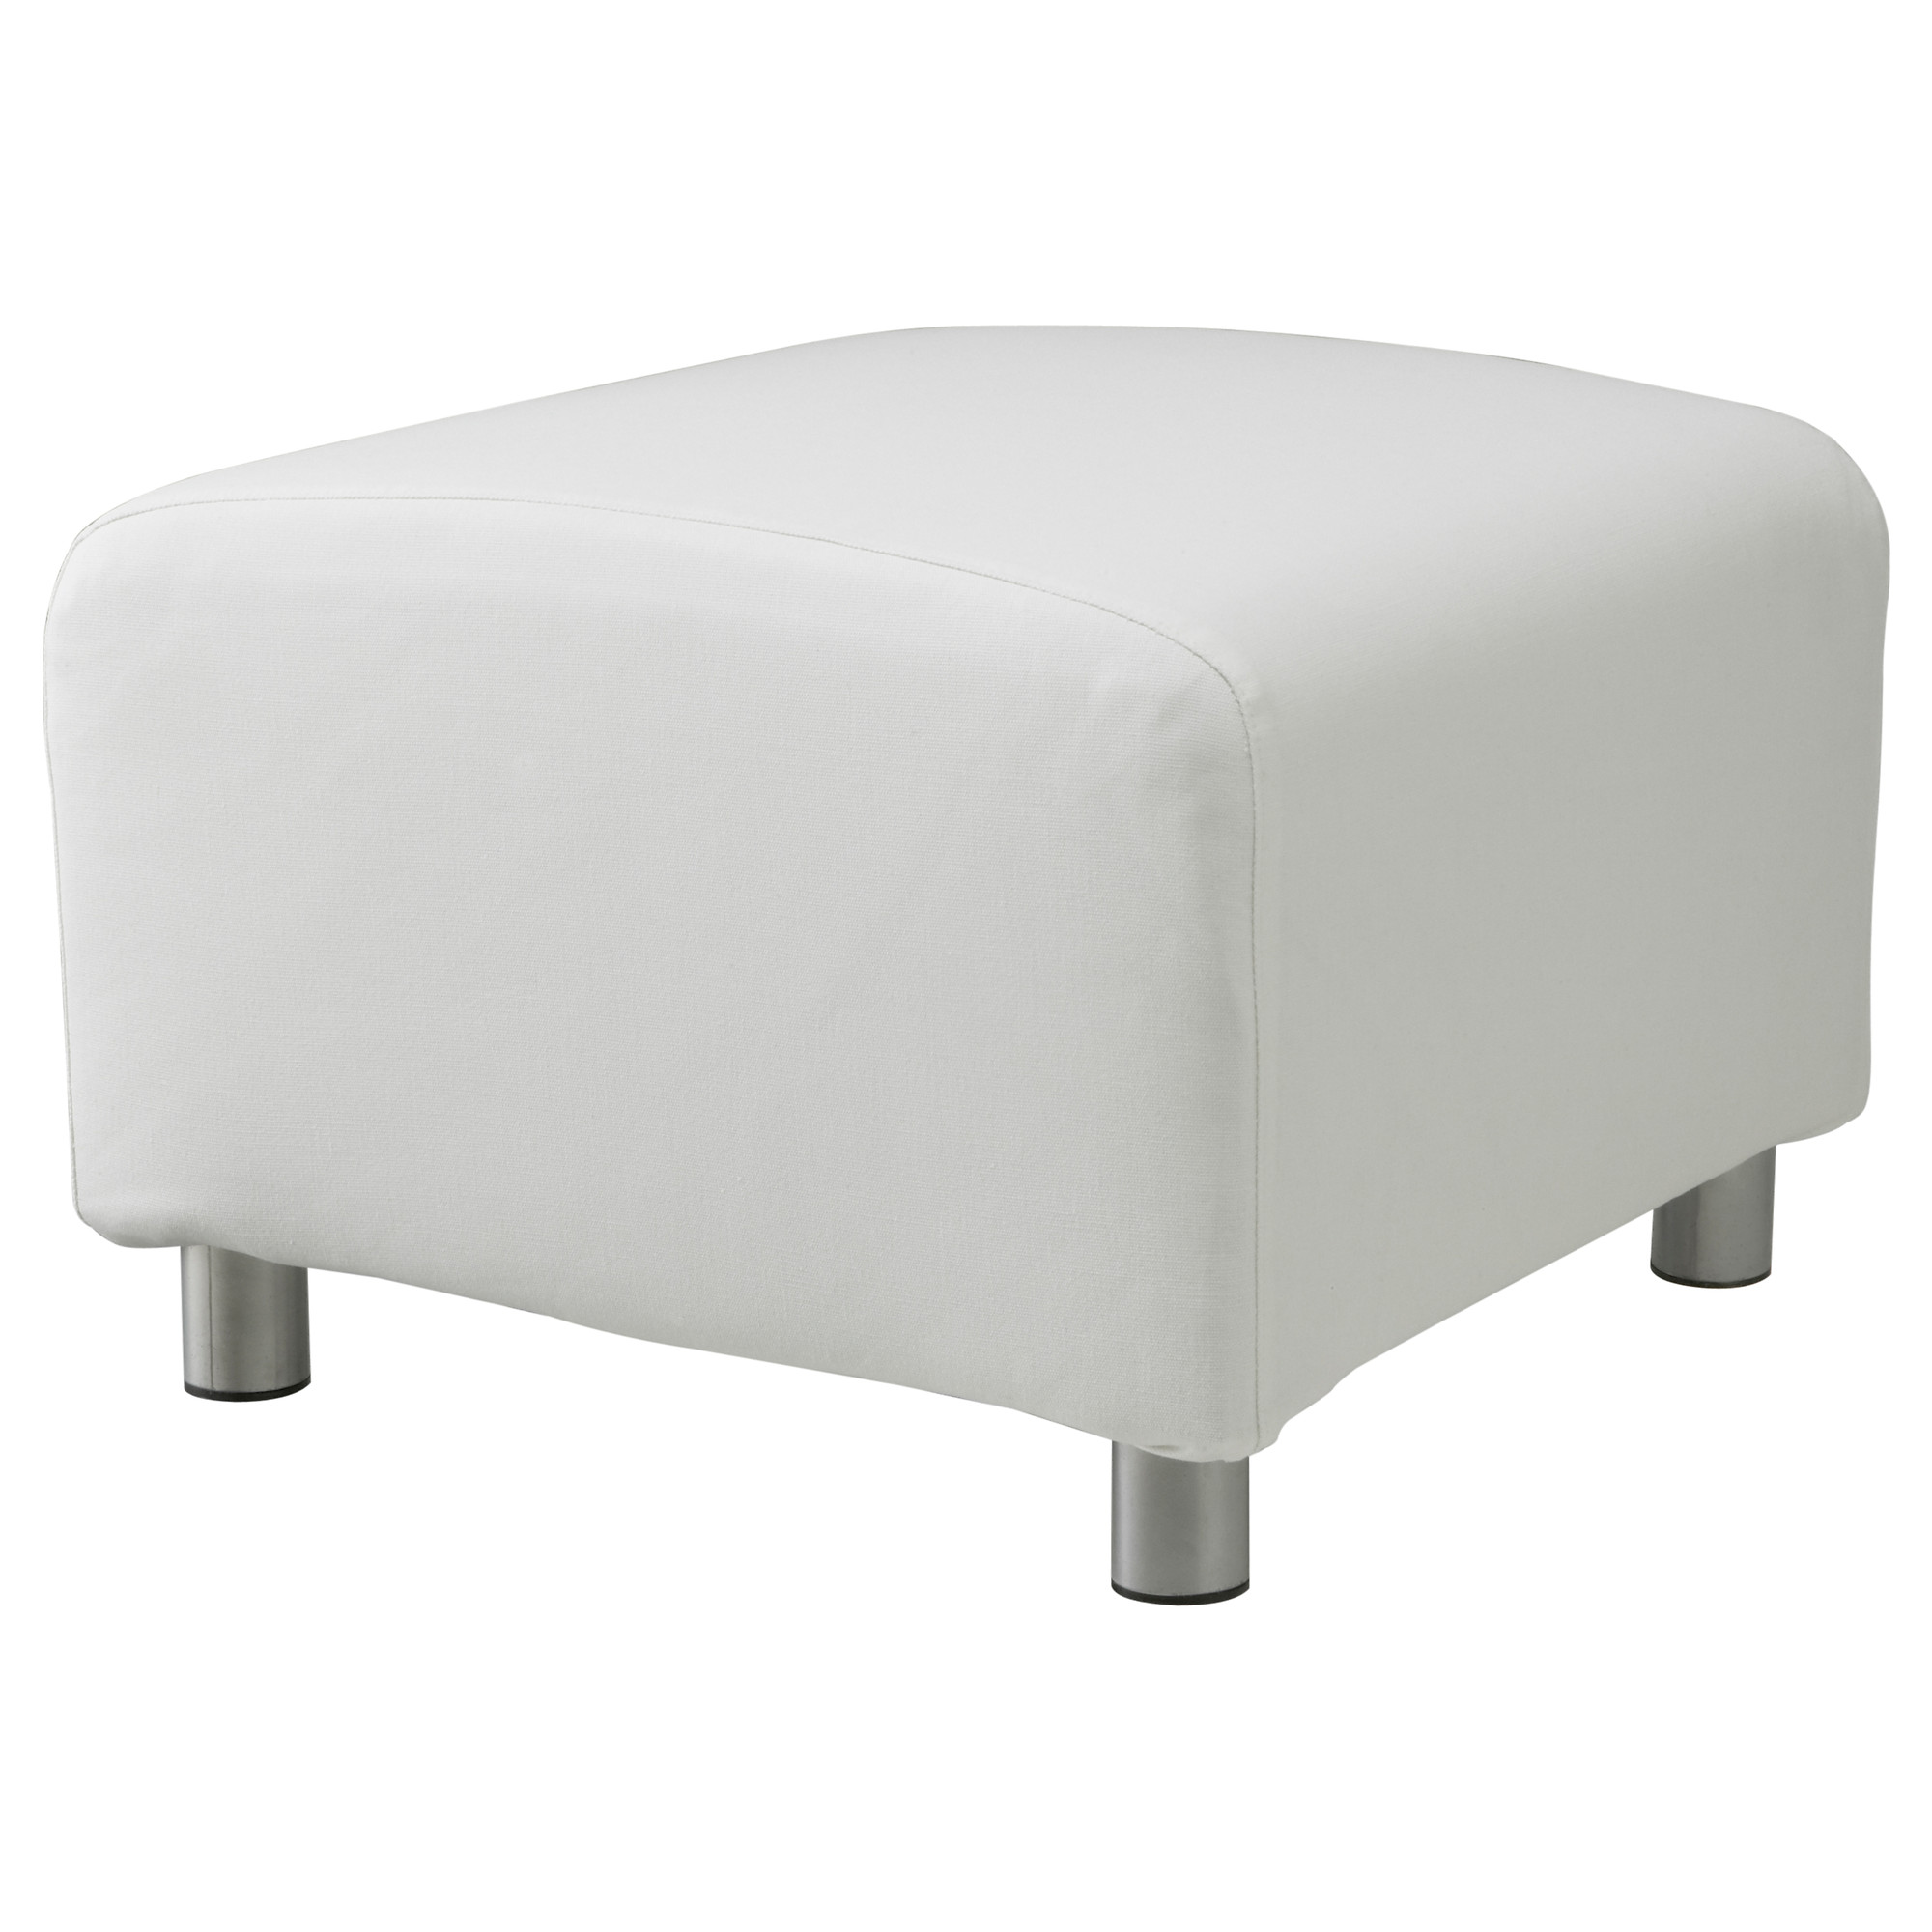 Sofa ikea klippan  Custom Slip Cover for Ikea Klippan Footstool 100% Cotton Sofa ...